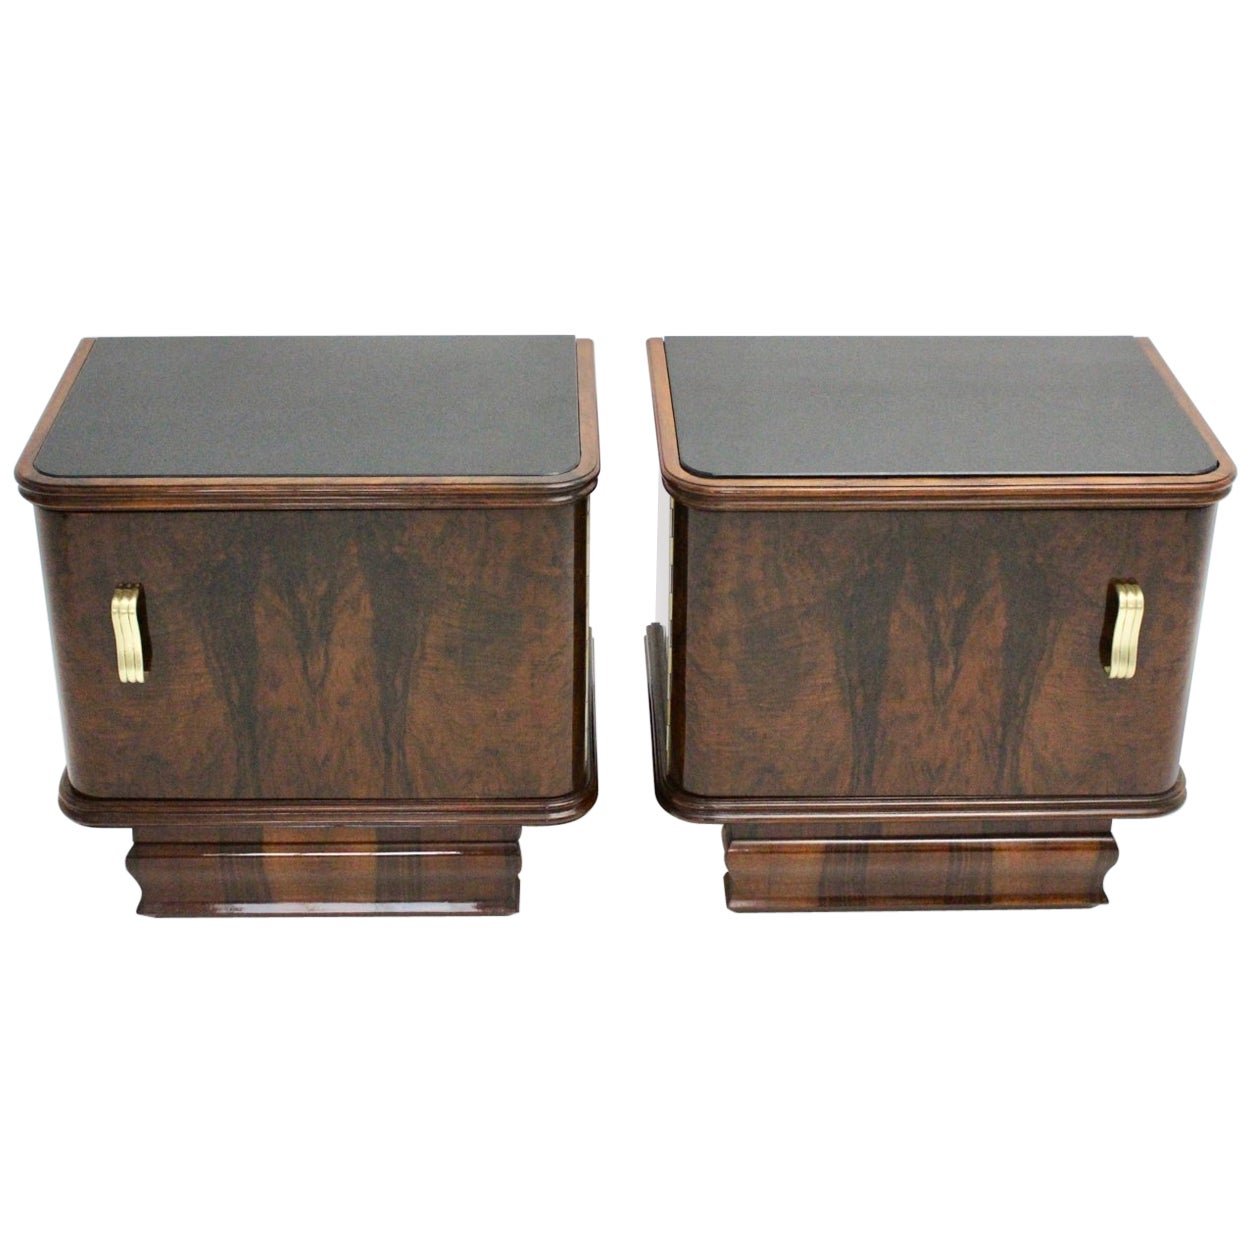 Art Deco Pair of Vintage Nightstands or Chests Austria, 1930s Walnut Brass